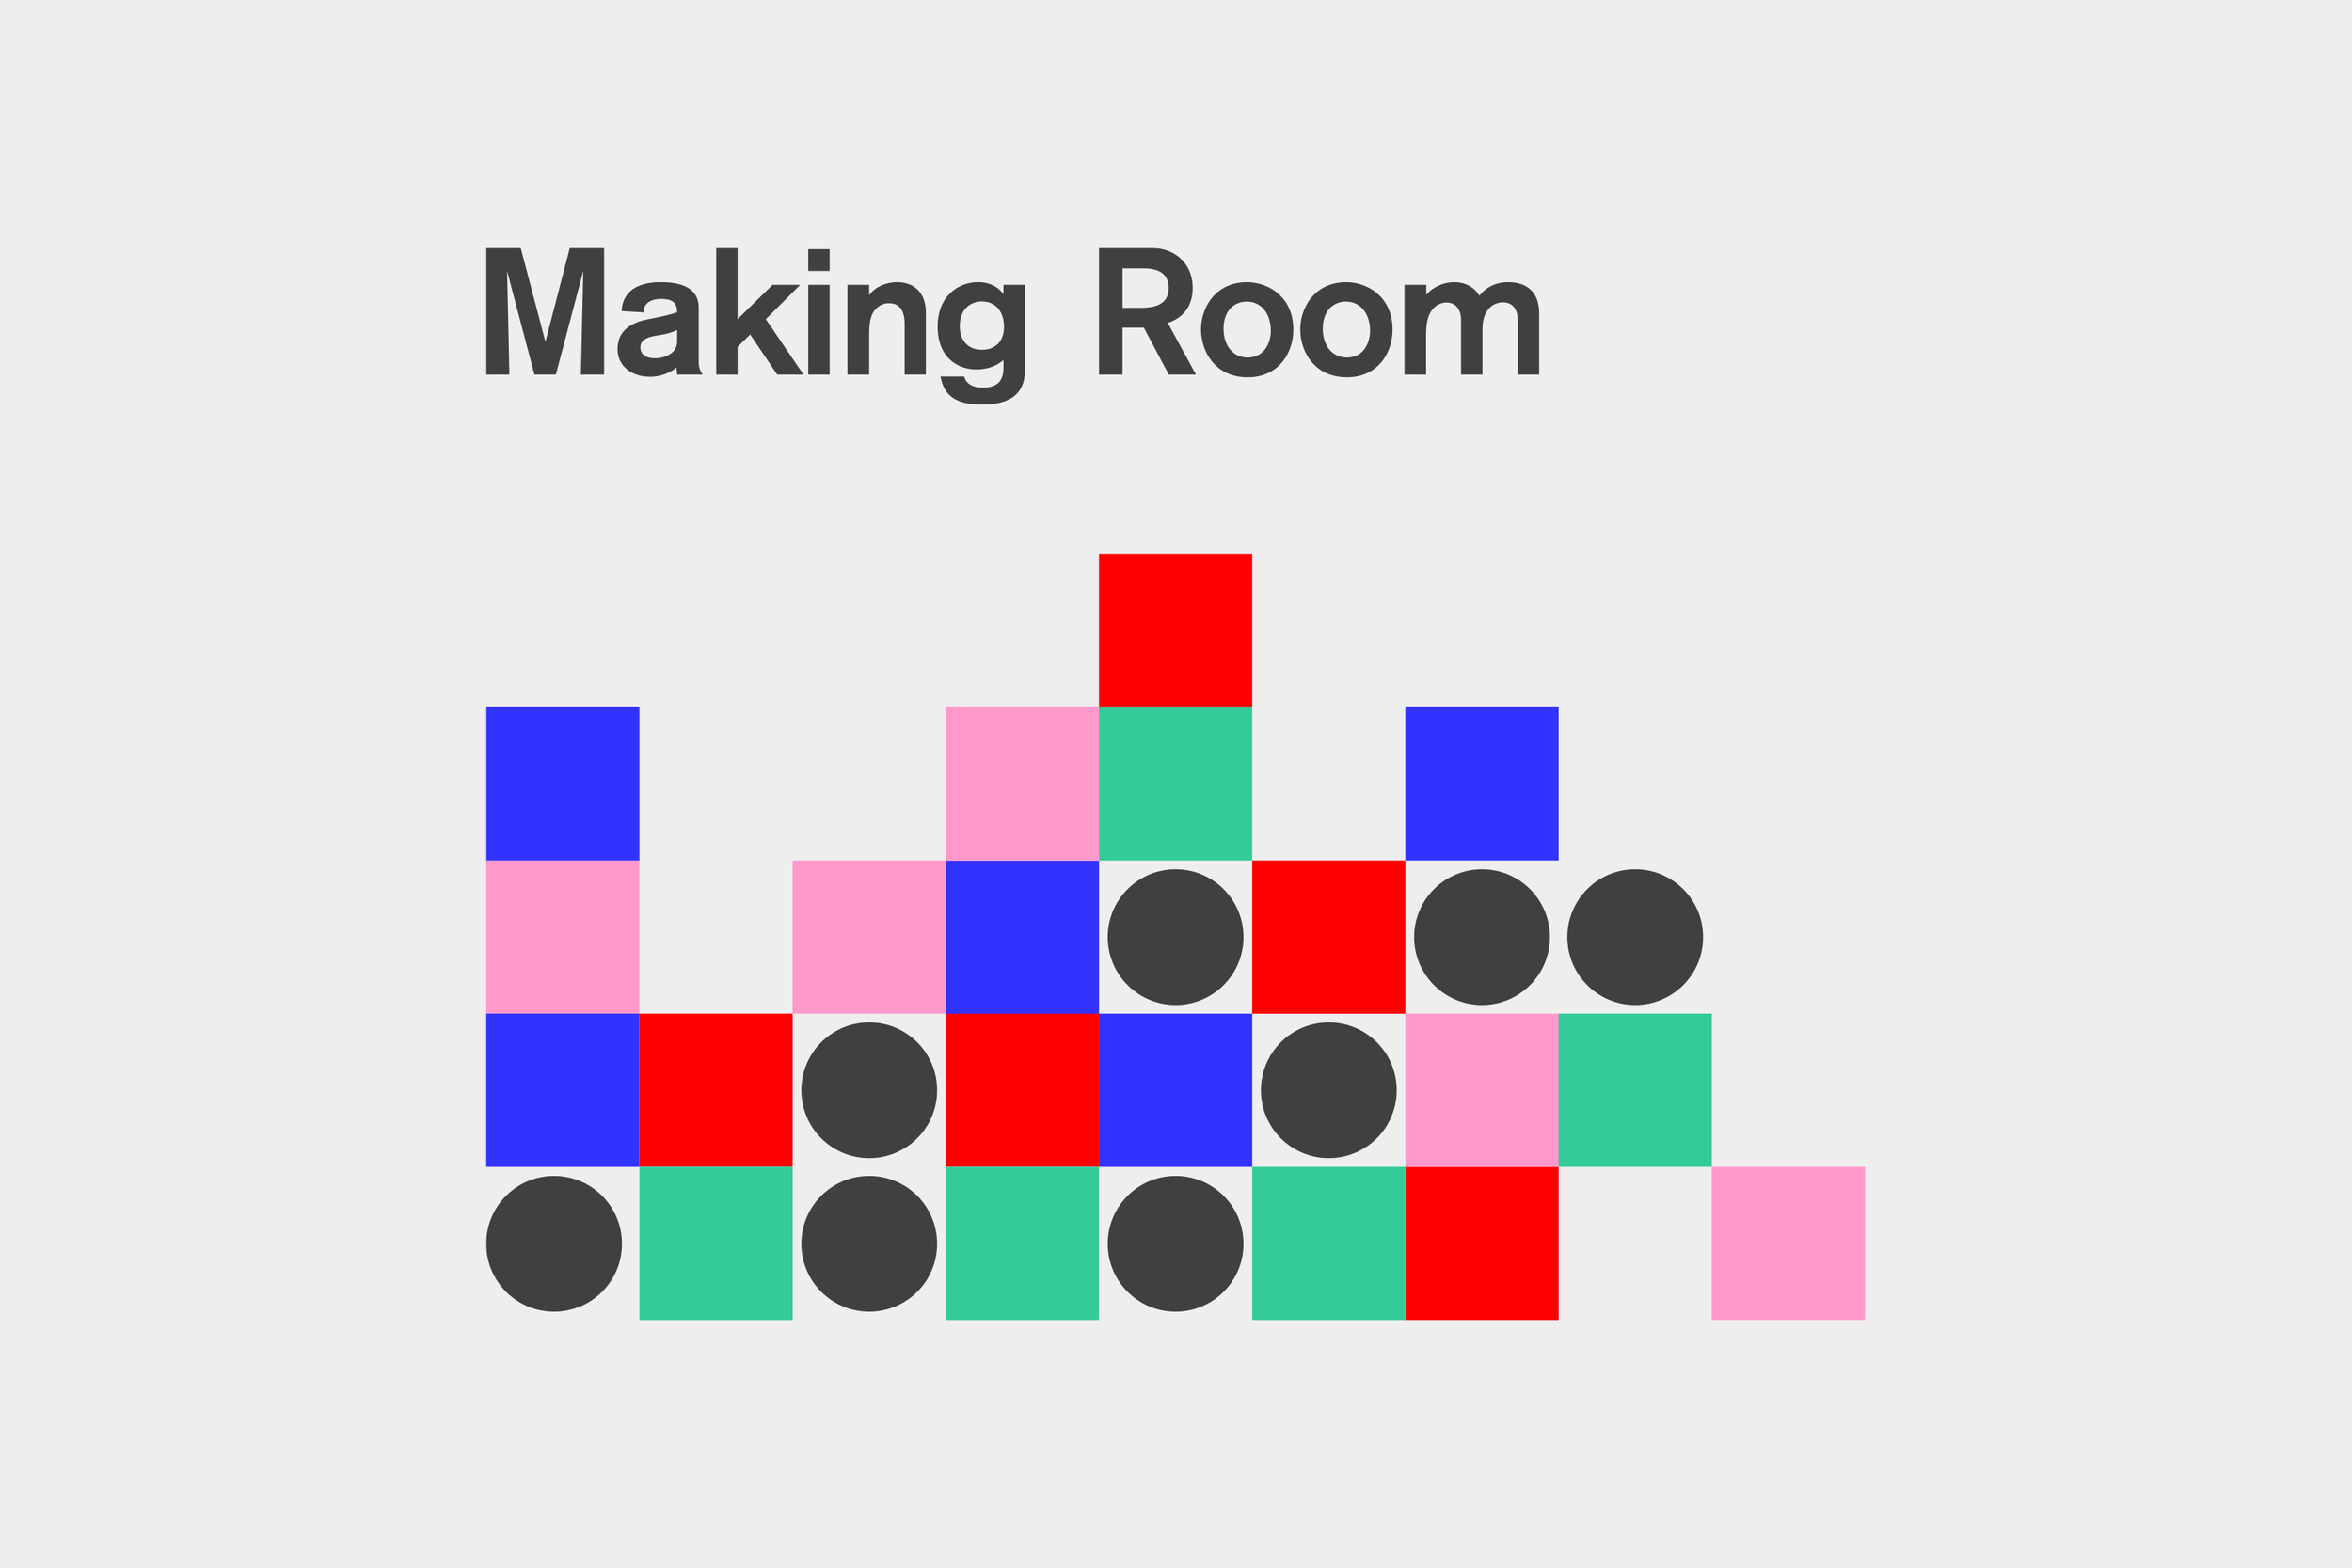 making_room_02.png